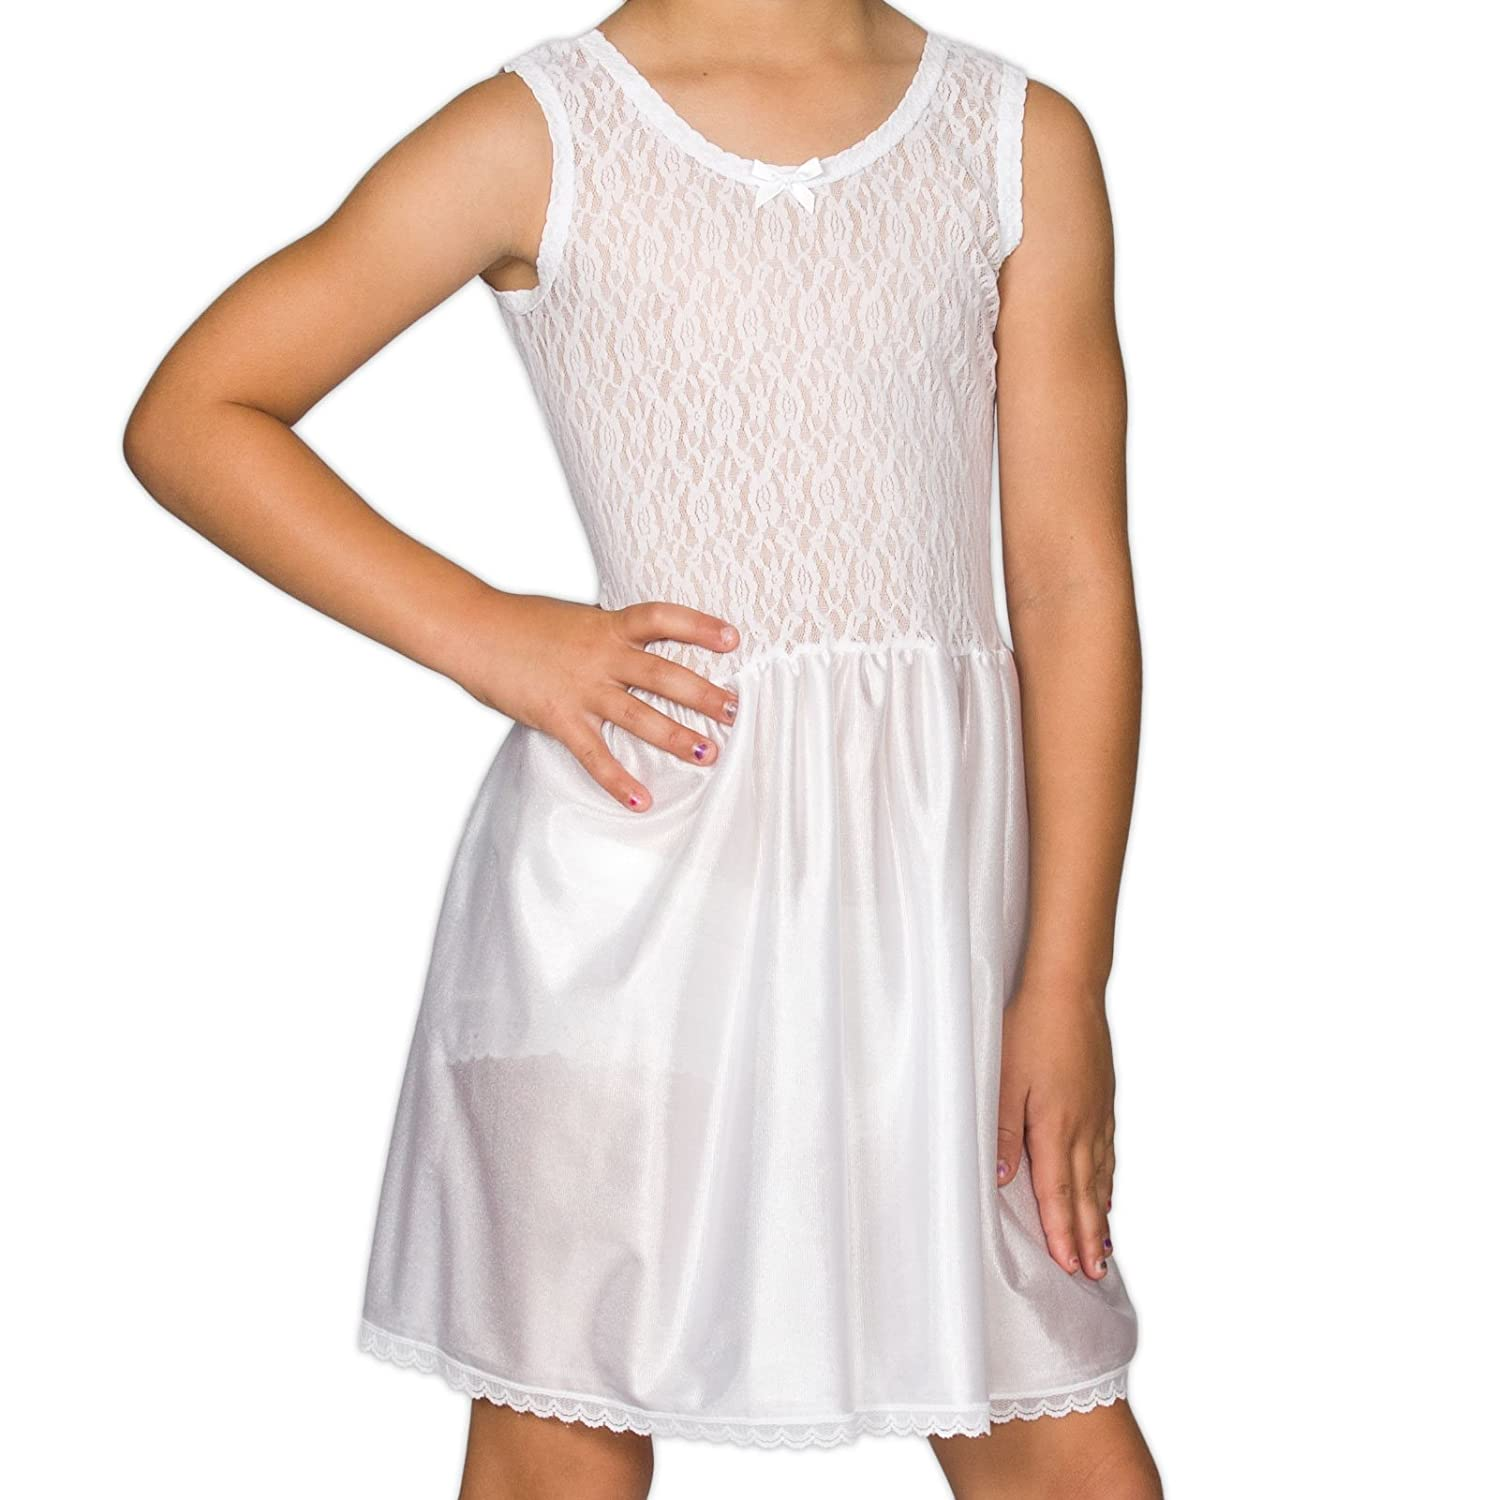 I.C. Collections Big Girls White Stretch Lace Slip, 10 New ICM 000403-WHC